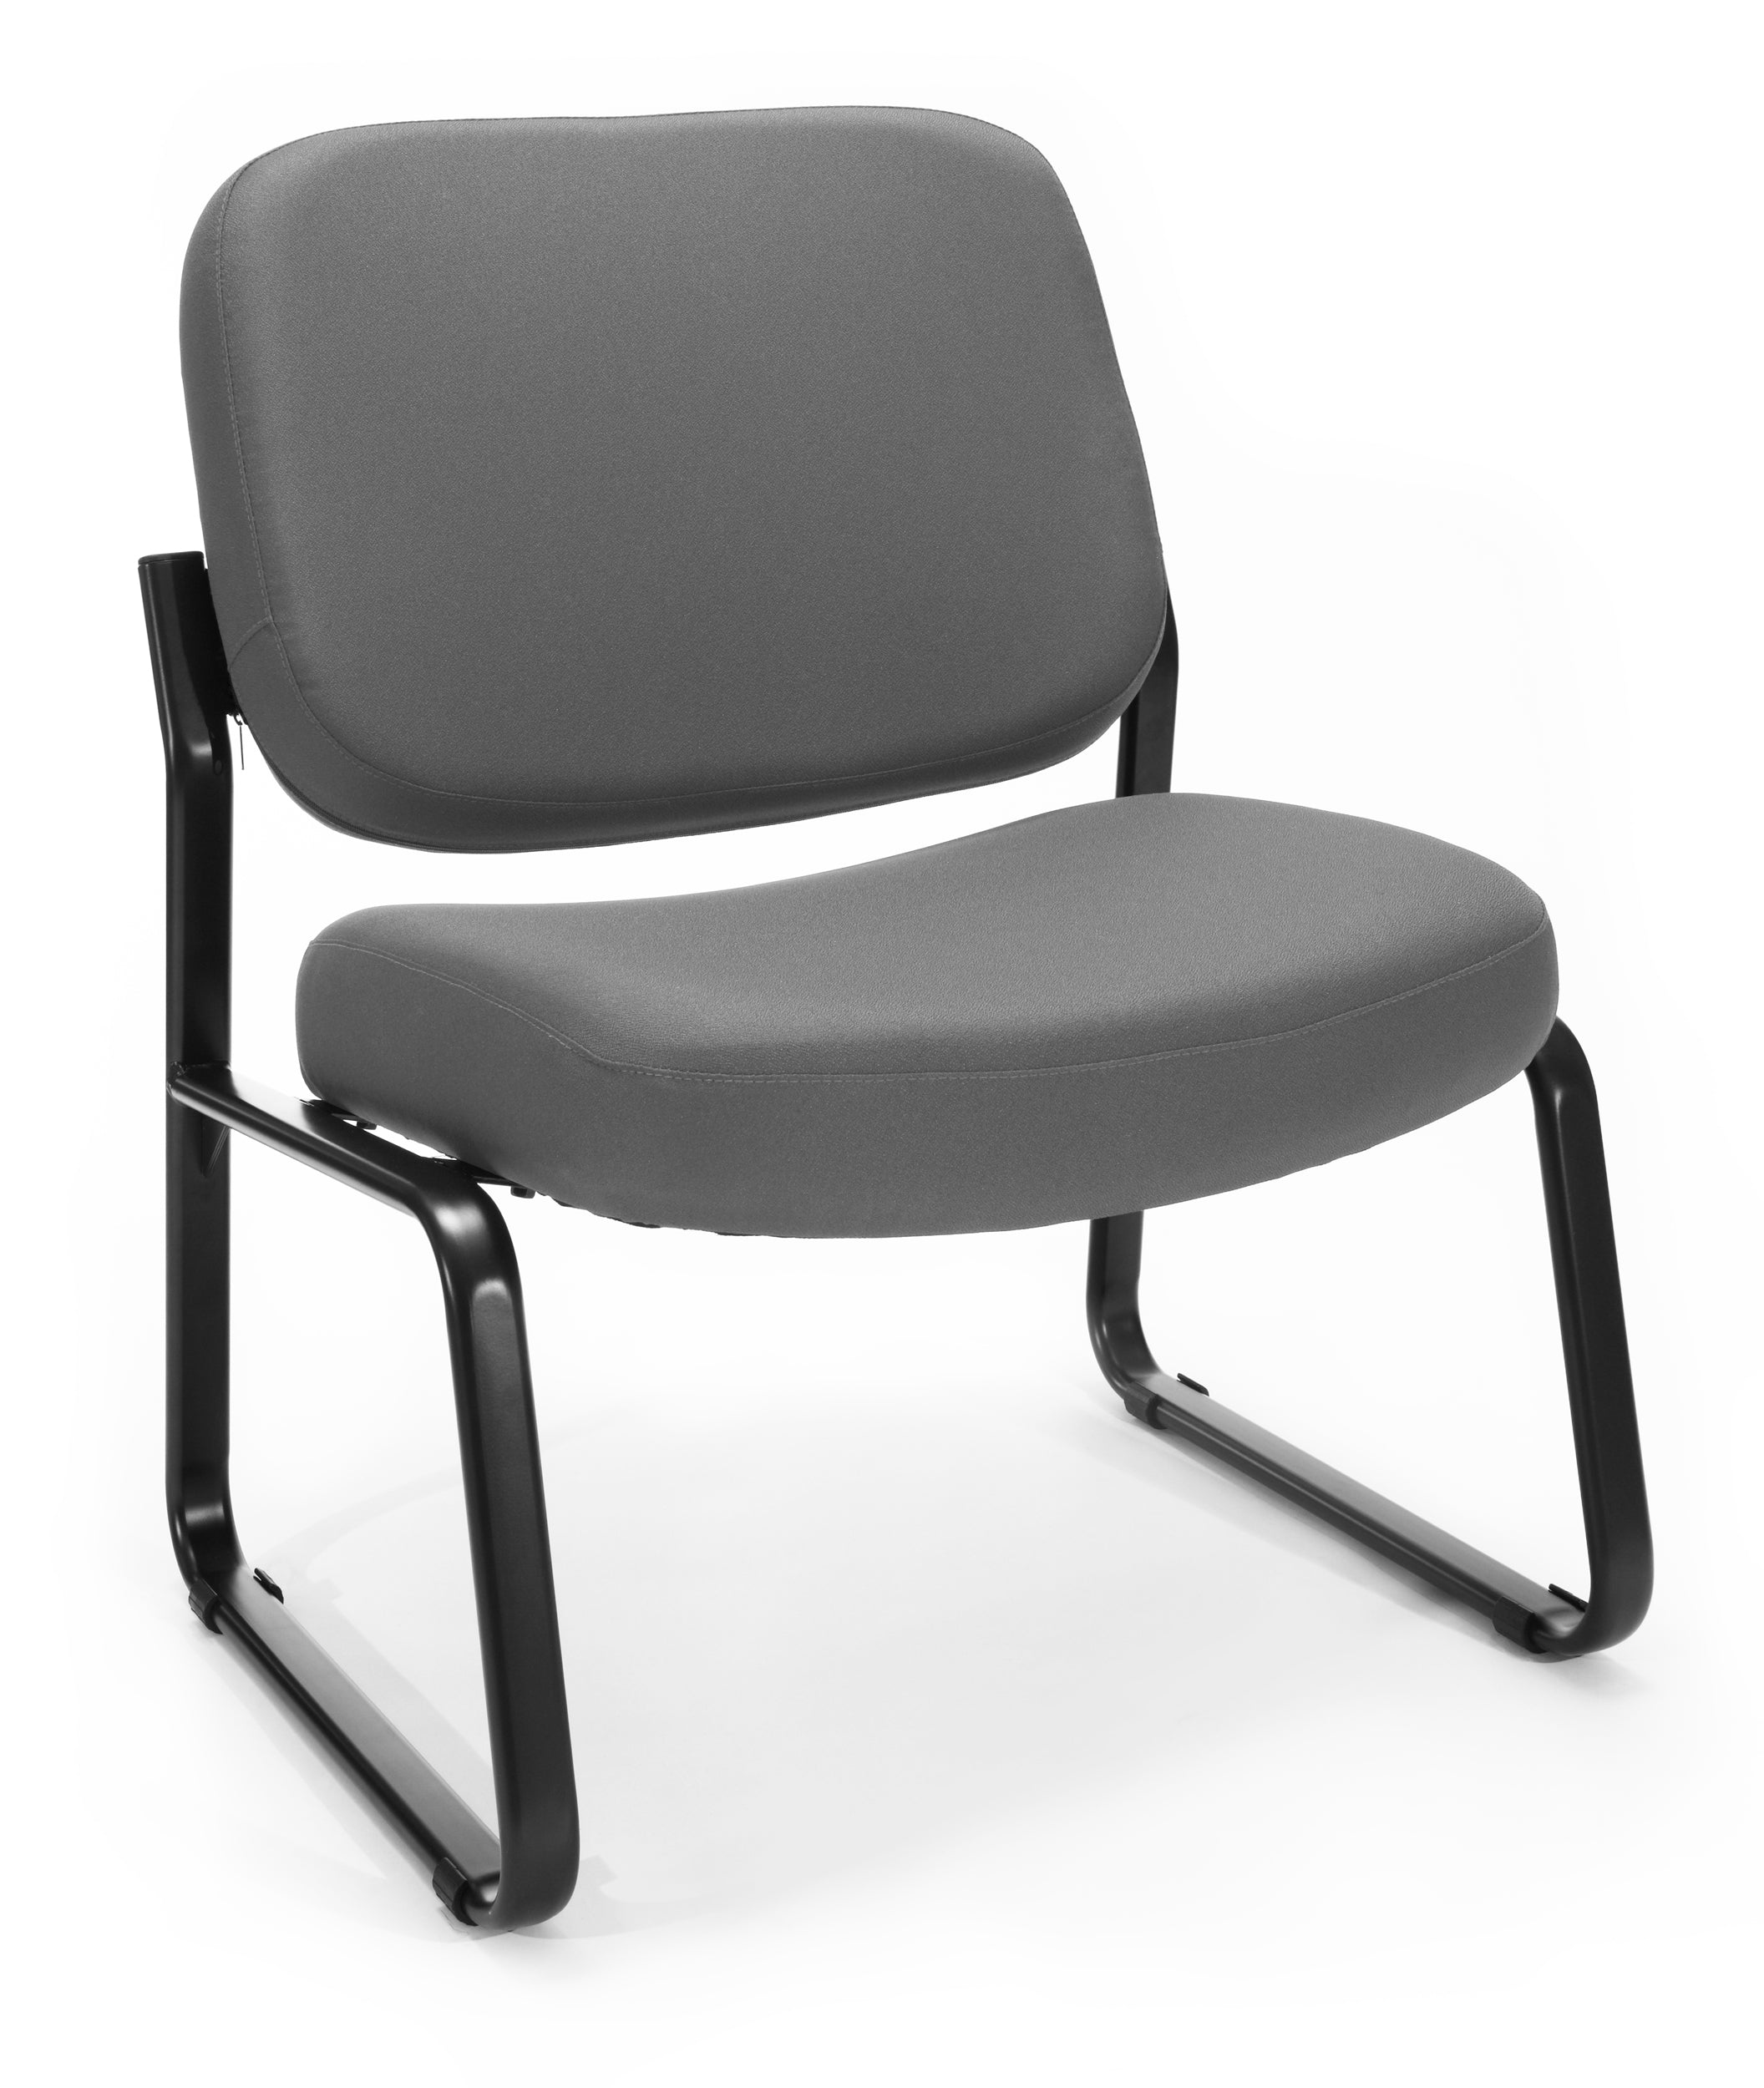 Ofminc MODEL 409 Armless Big & Tall Guest / Reception Chair